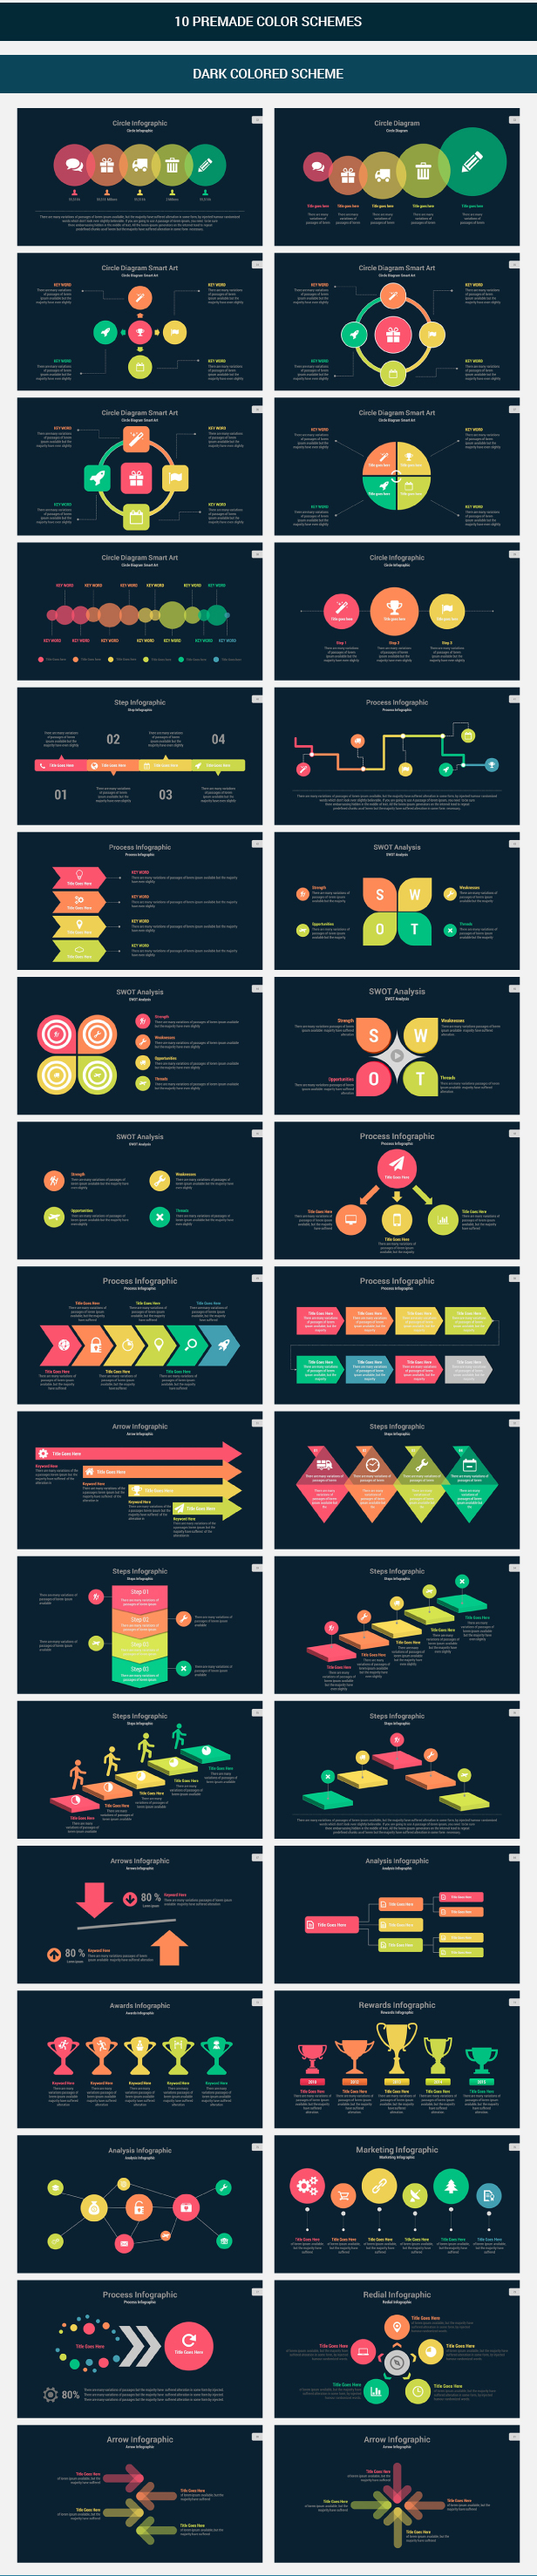 BizMax PowerPoint Presentation Template - 3